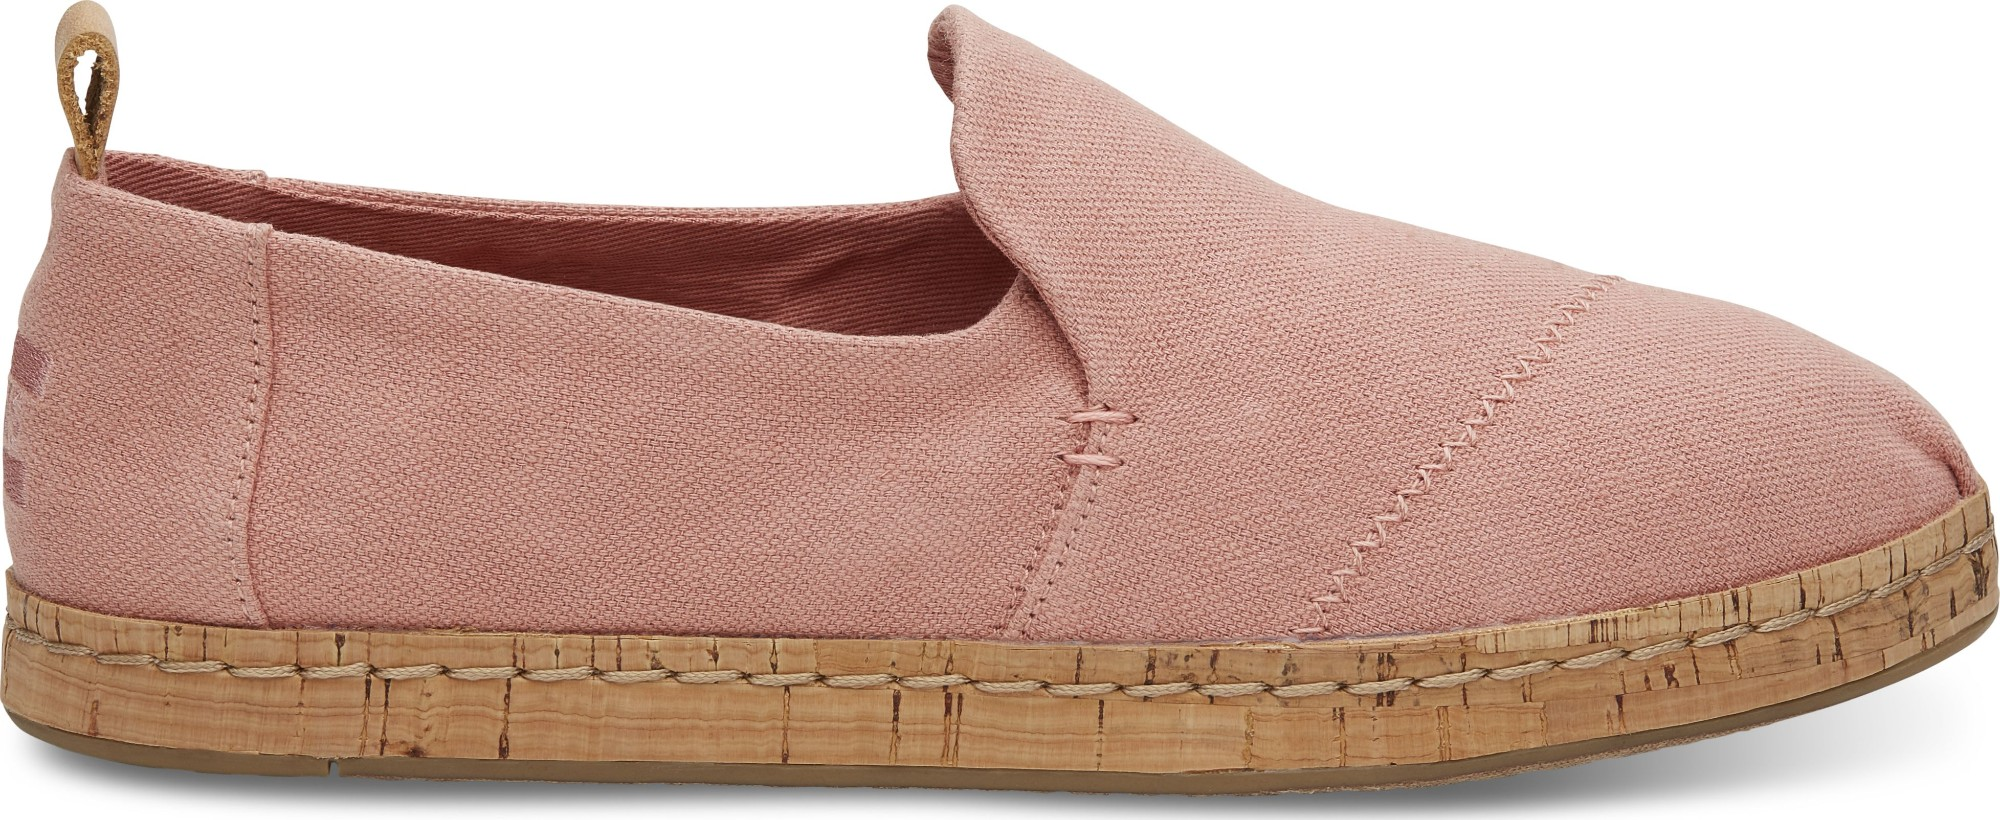 TOMS Oxford Women's Deconstructed Alpargata Cork Bloom 40